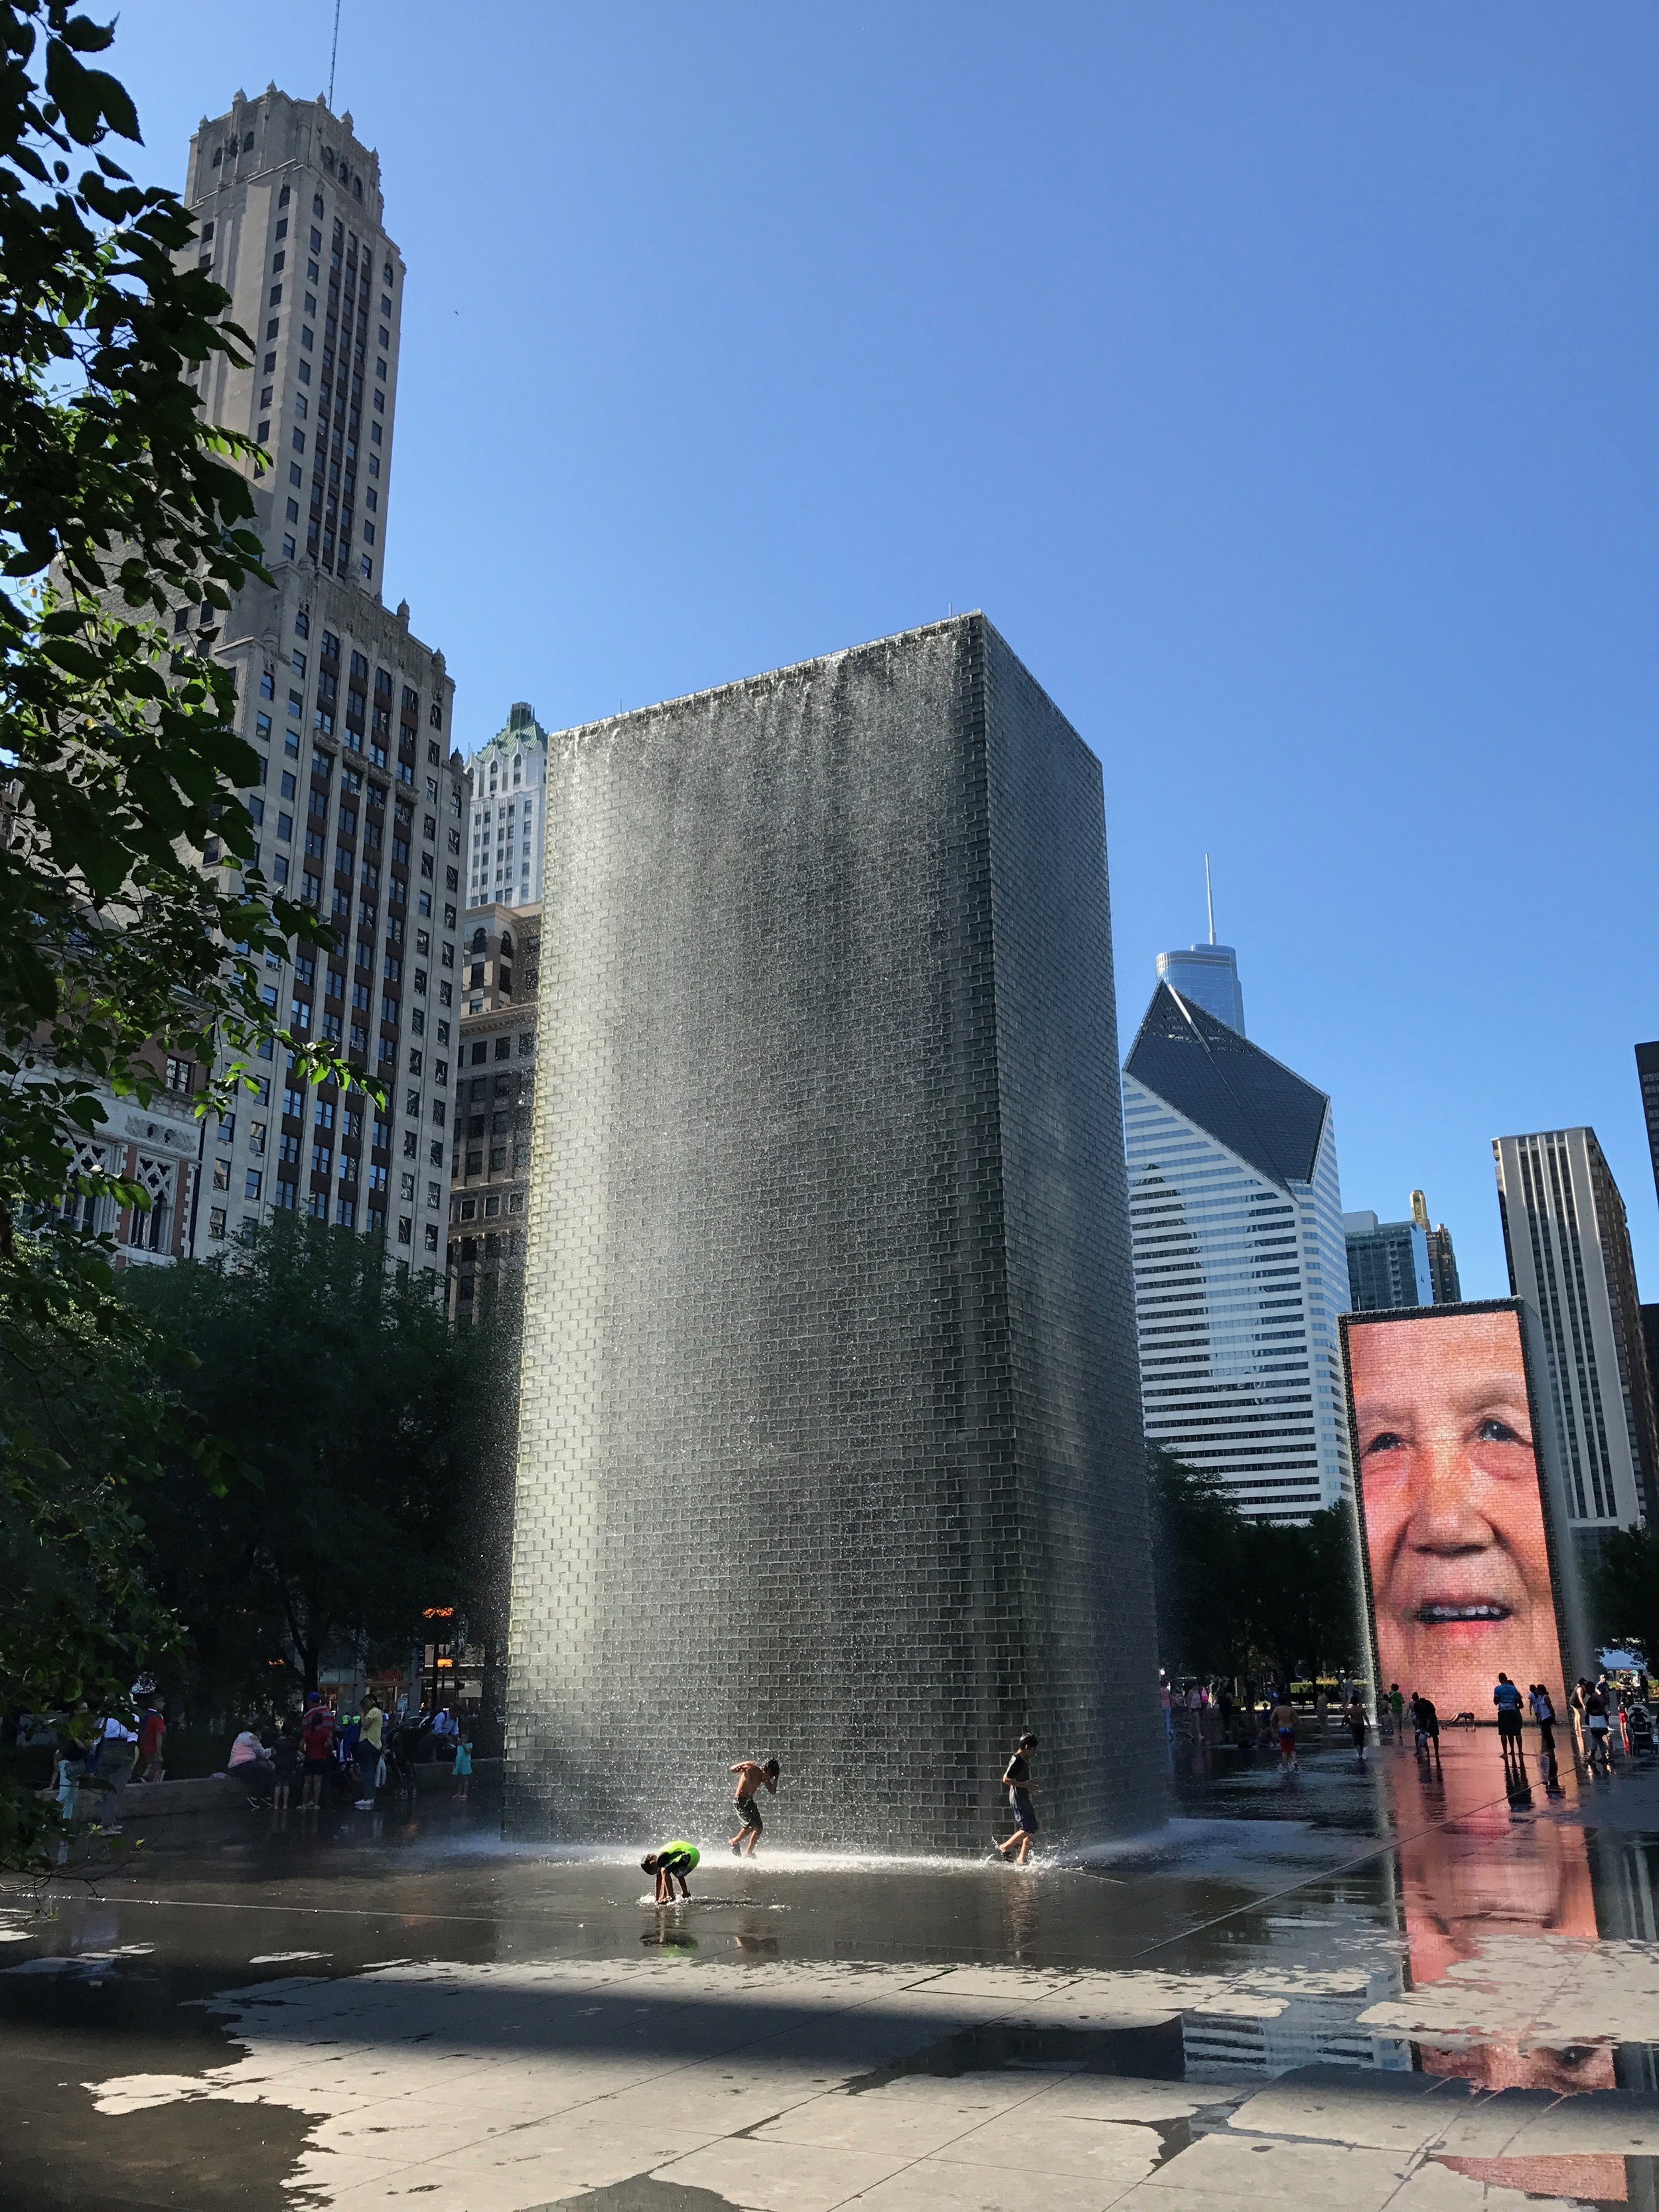 Designed by Designed by Spanish artist  Jaume Plensa , the  Crown Fountain in  Millennium Park  is a major addition to the city's world-renowned public art collection.  The fountain consists of two 50-foot glass block towers at each end of a shallow reflecting pool. The towers project video images from a broad social spectrum of Chicago citizens, a reference to the traditional use of gargoyles in fountains, where faces of mythological beings were sculpted with open mouths to allow water, a symbol of life, to flow out.  Plensa adapted this practice by having faces of Chicago citizens projected on LED screens and having water flow through an outlet in the screen to give the illusion of water spouting from their mouths. The collection of faces, Plensa's tribute to Chicagoans, was taken from a cross-section of 1,000 residents.  The fountain's water features operate during the year between mid-spring and mid-fall, while the images remain on view year-round.